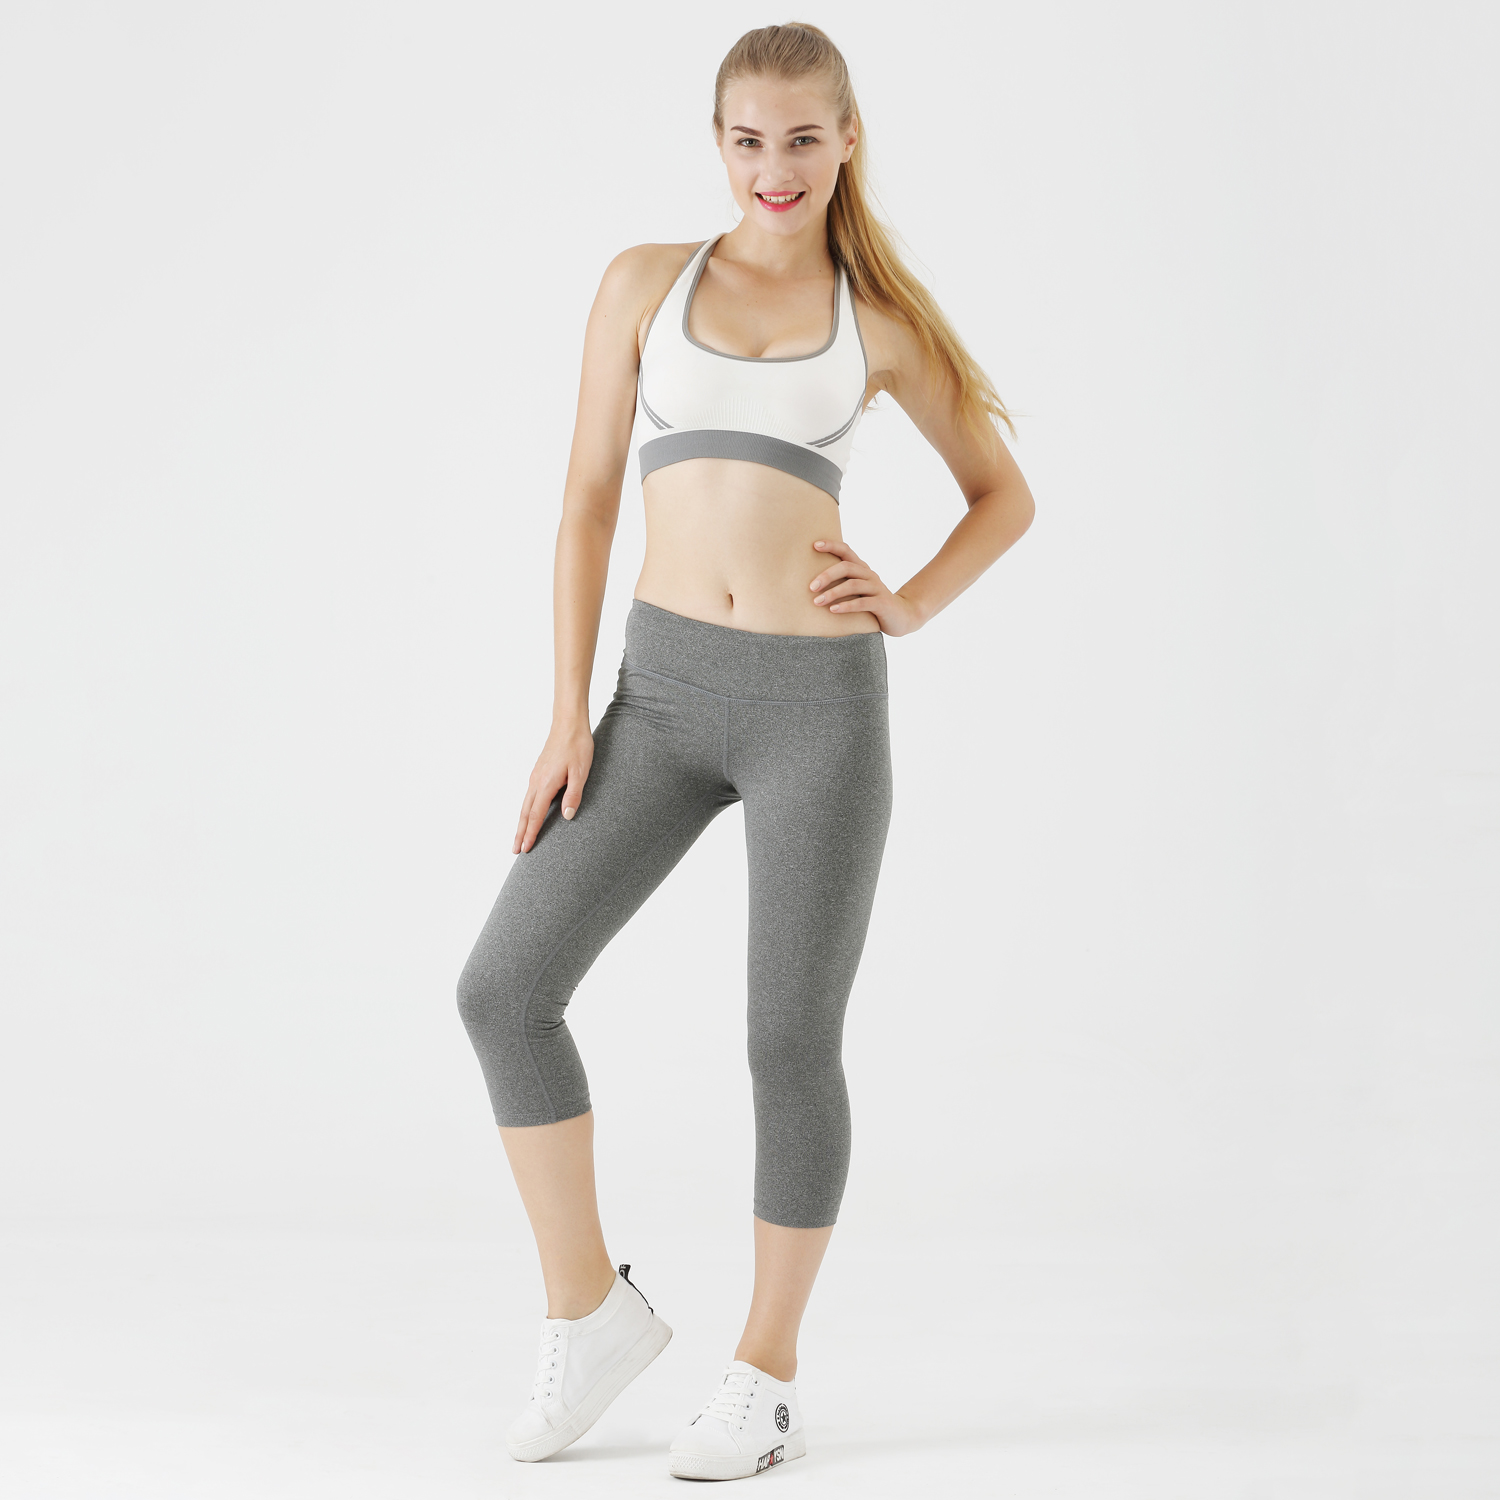 Shop for spandex workout clothes online at Target. Free shipping on purchases over $35 and save 5% every day with your Target REDcard.